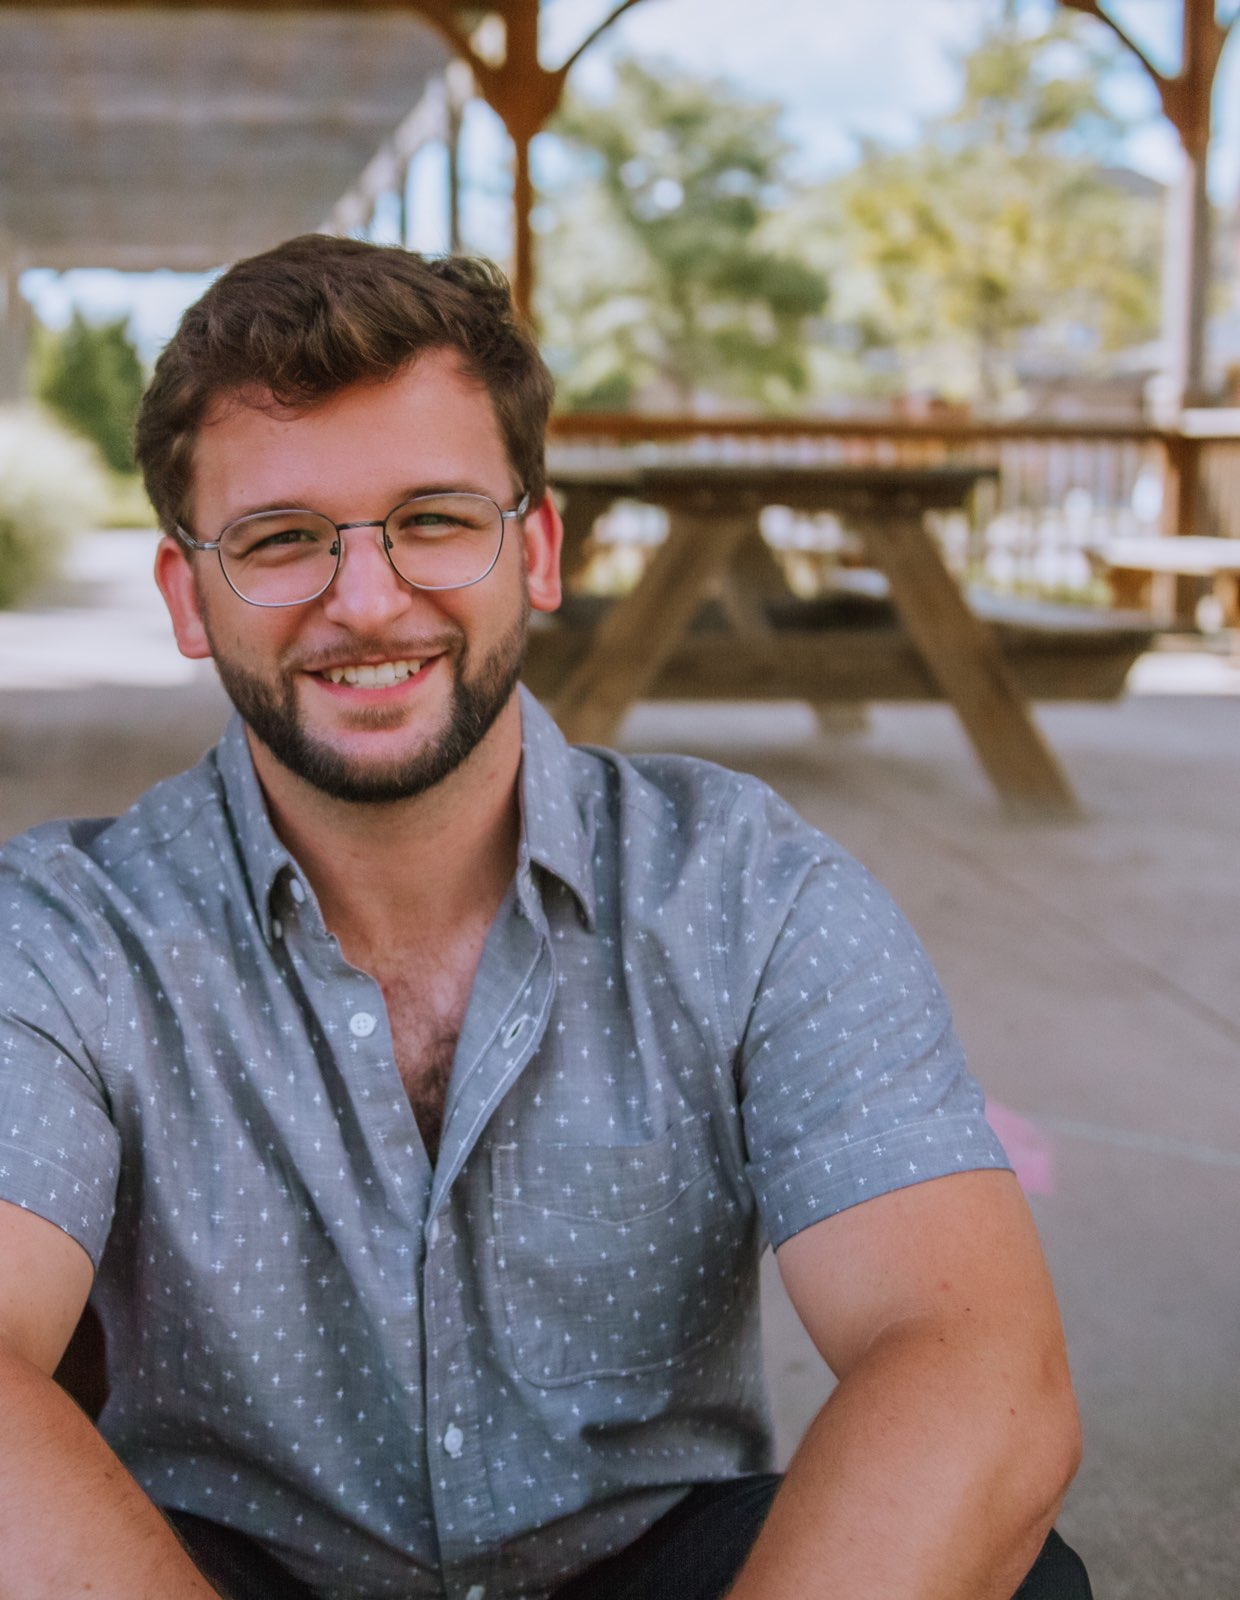 ACER Alumnus Tyler Orsulak sits smiling in front of a picnic table.